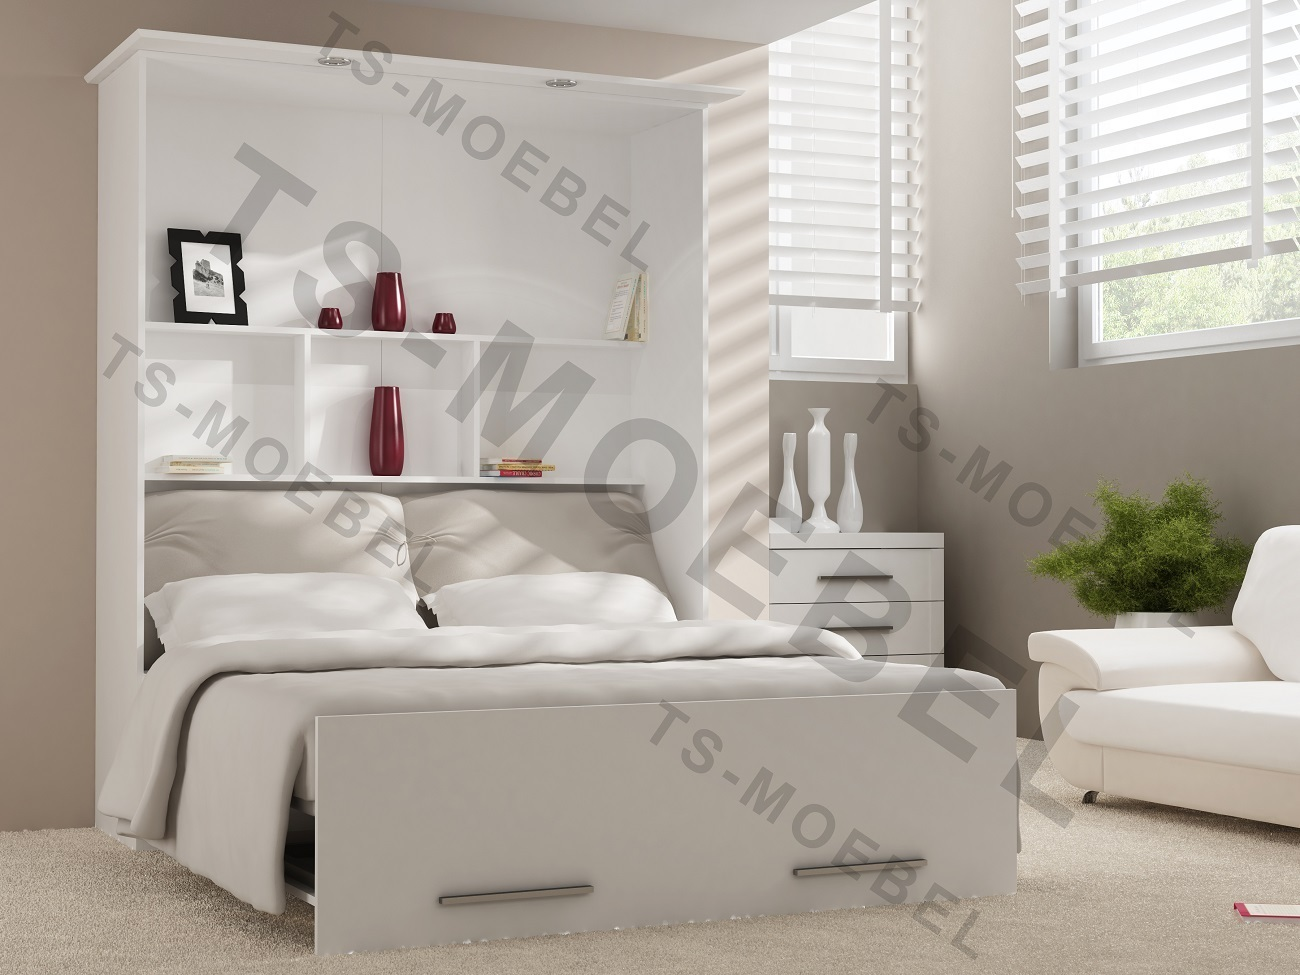 wandbett 50 w 3 160x200 cm holzfarbe weiss hochkant. Black Bedroom Furniture Sets. Home Design Ideas